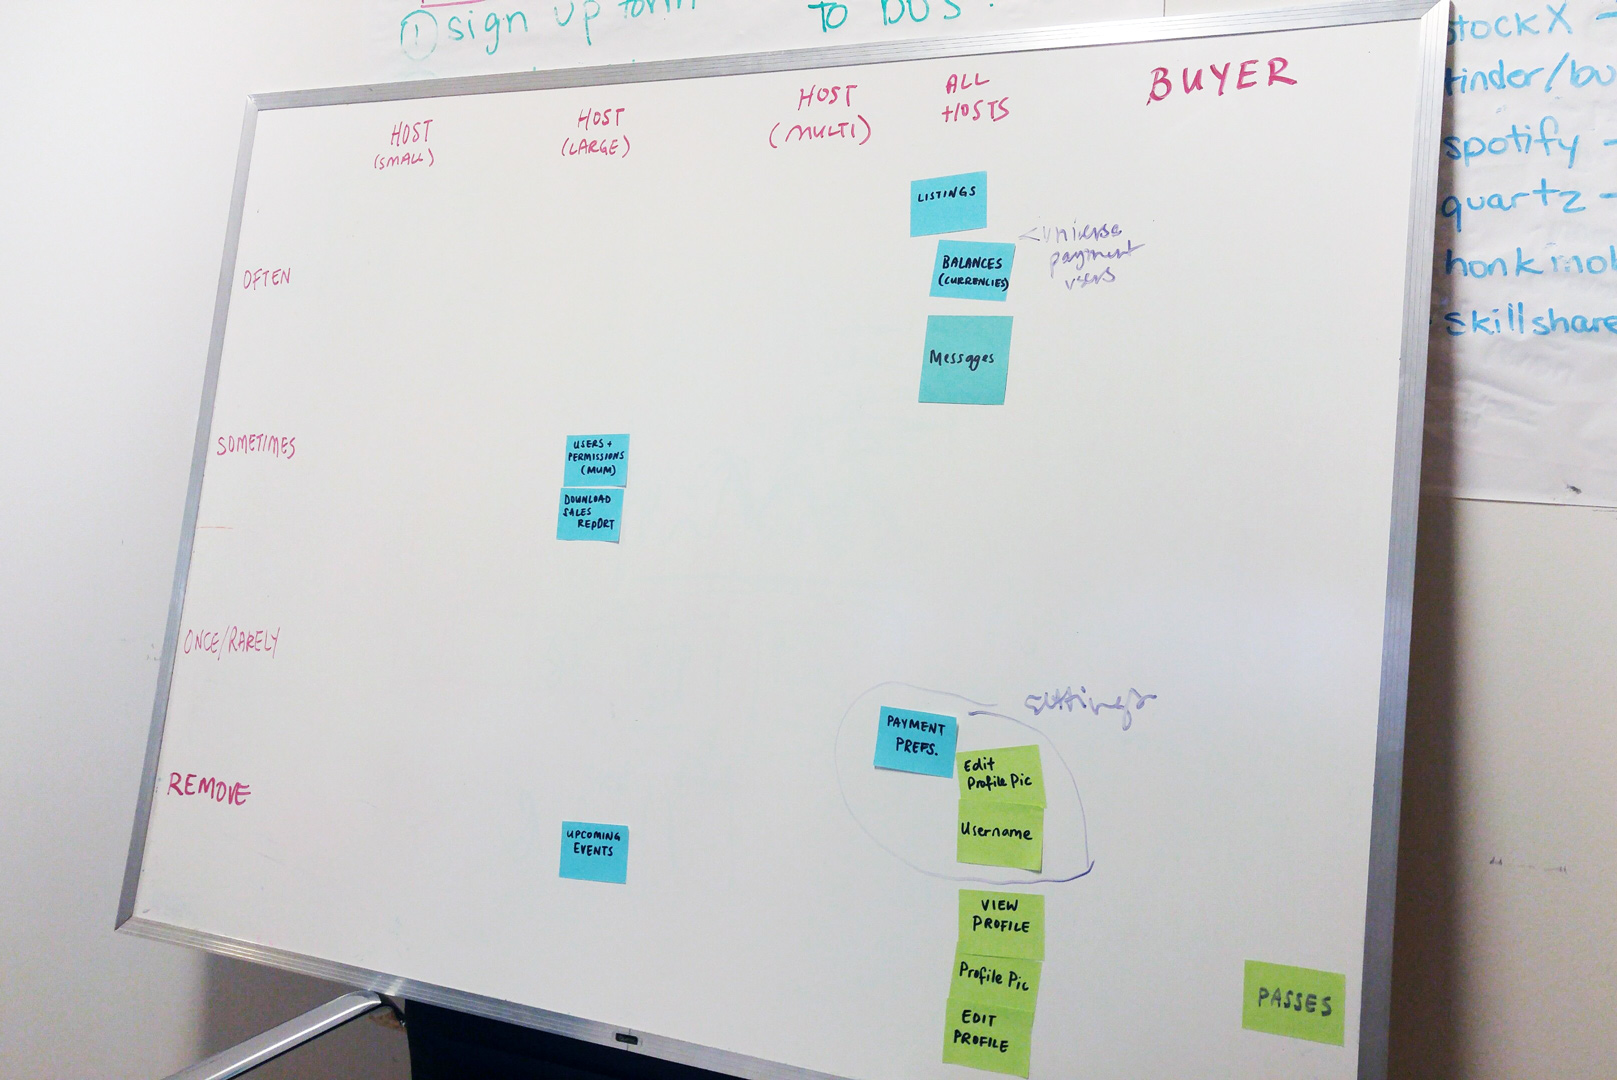 Image of a whiteboard with sticky notes organized under user categories (Small host, large host, multi hose, all host and buyers).